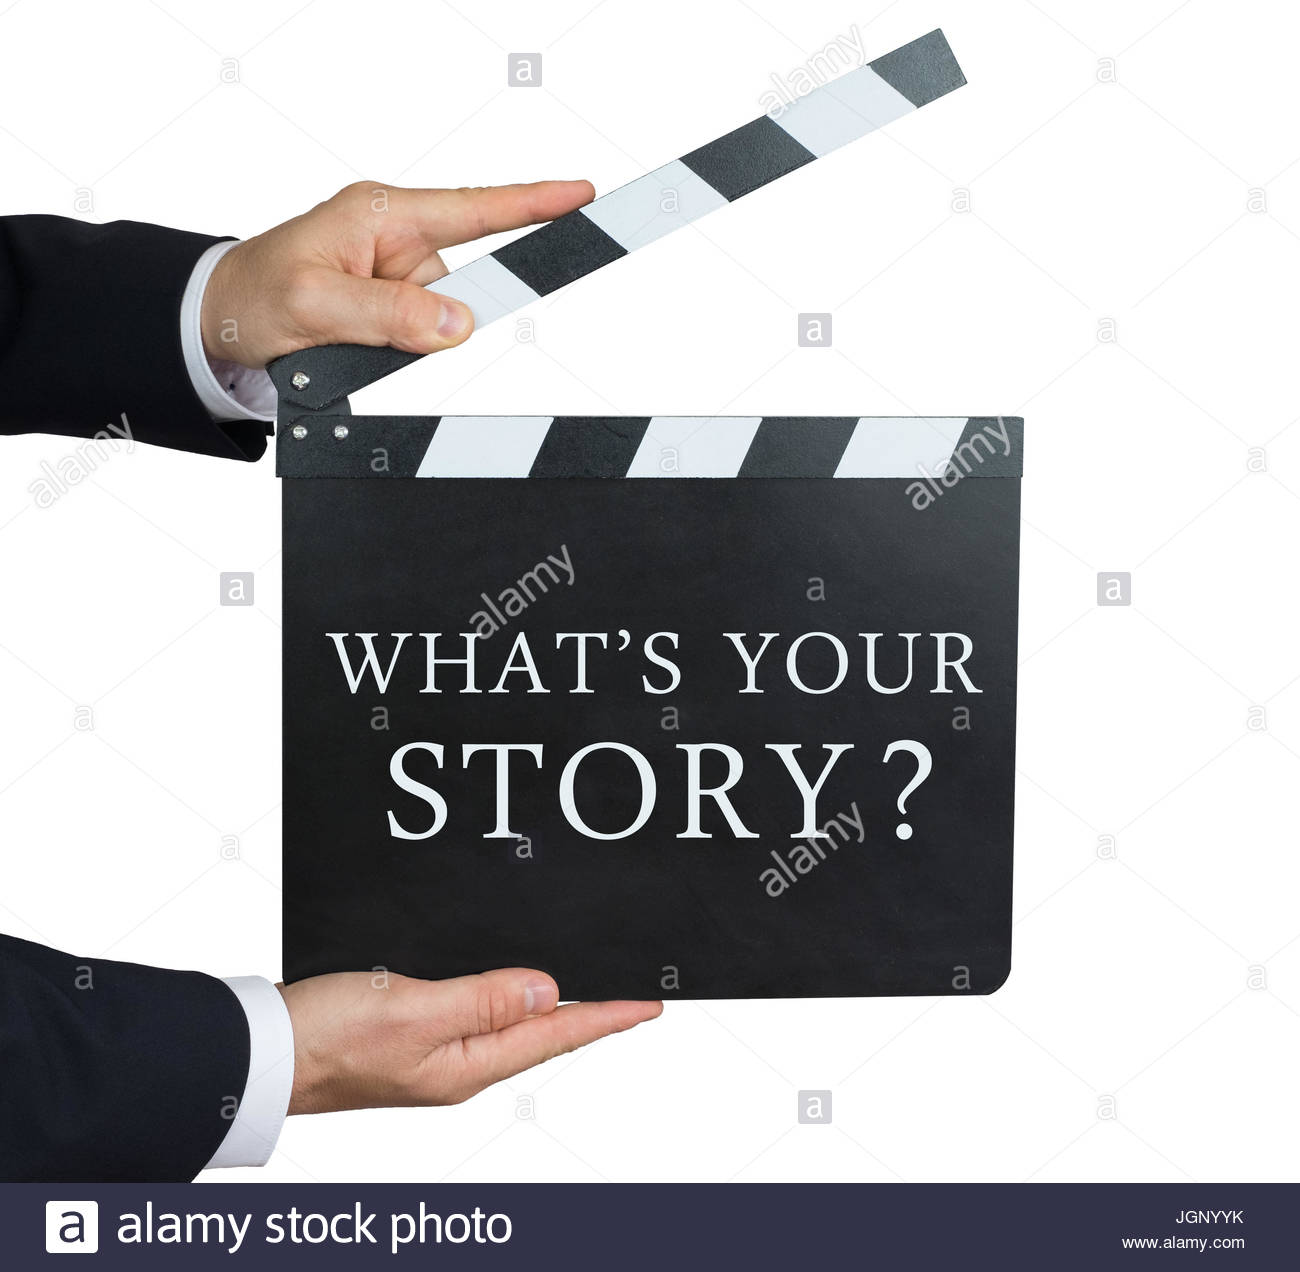 What's your story - question written on a clapperboard - Stock Image